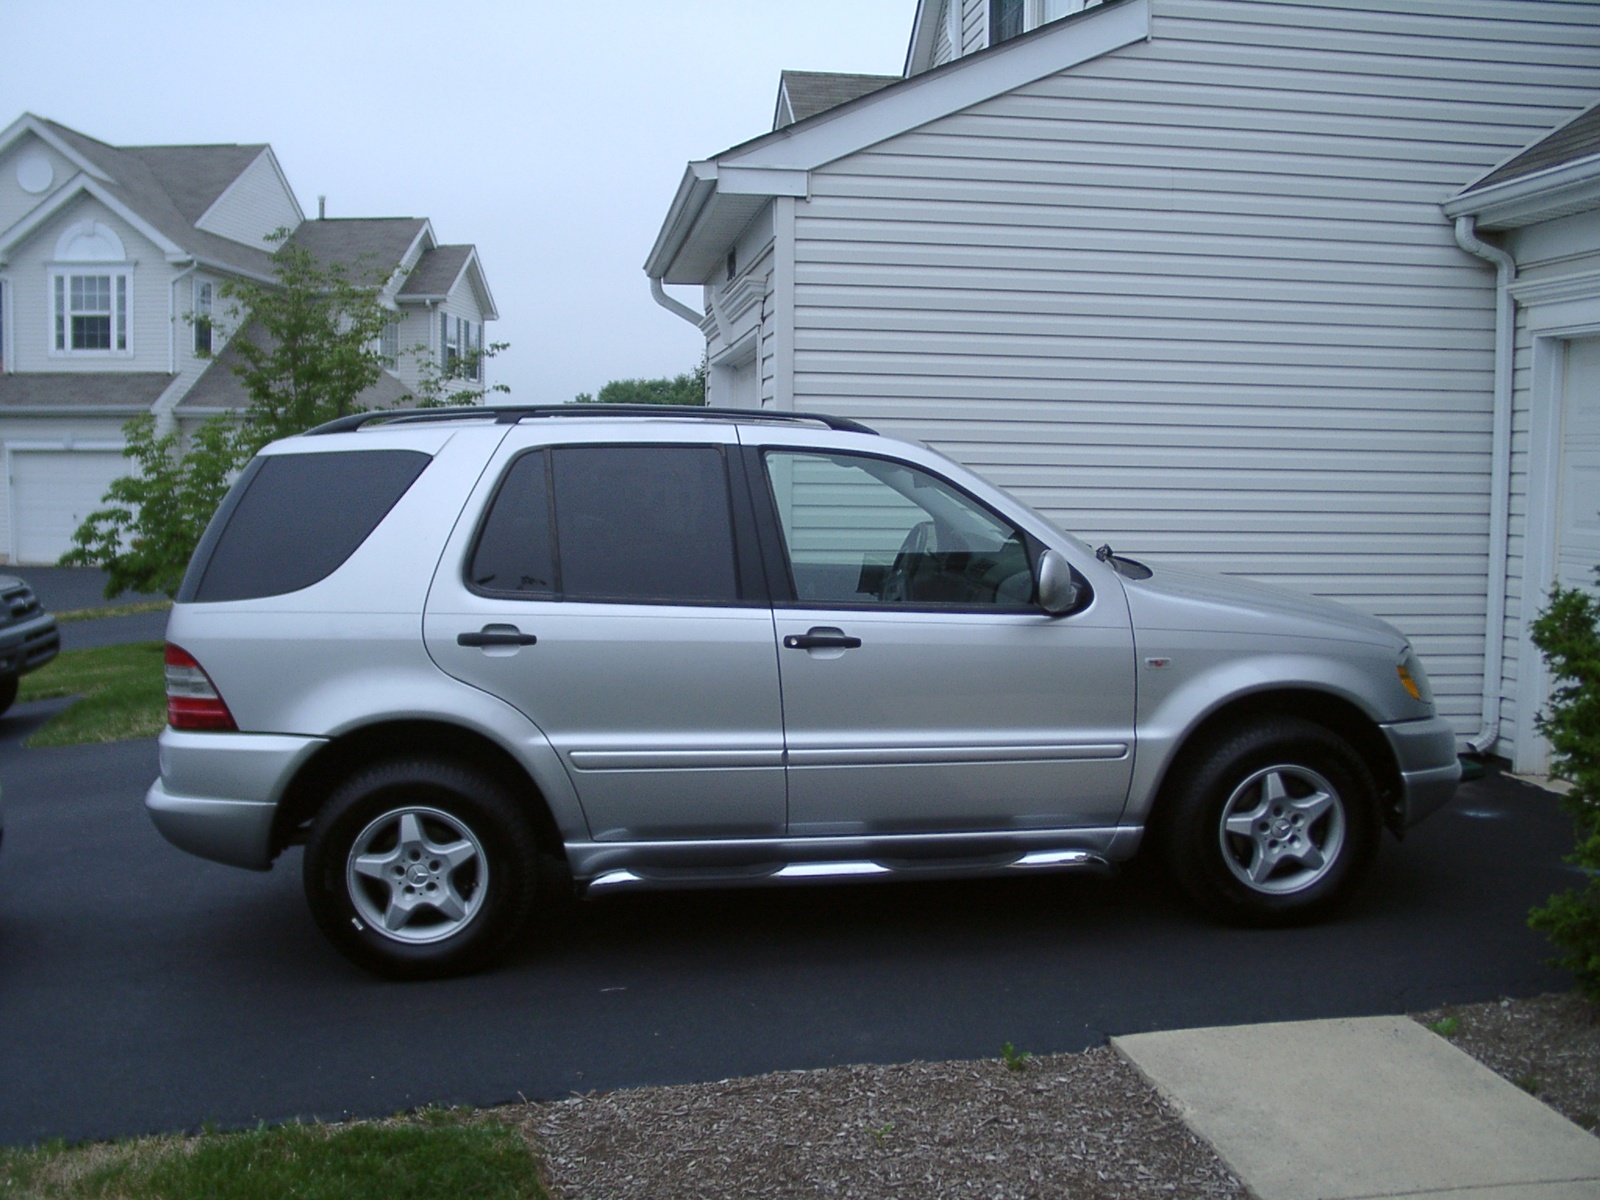 Picture of 2001 mercedes benz m class ml320 exterior for 2001 mercedes benz ml320